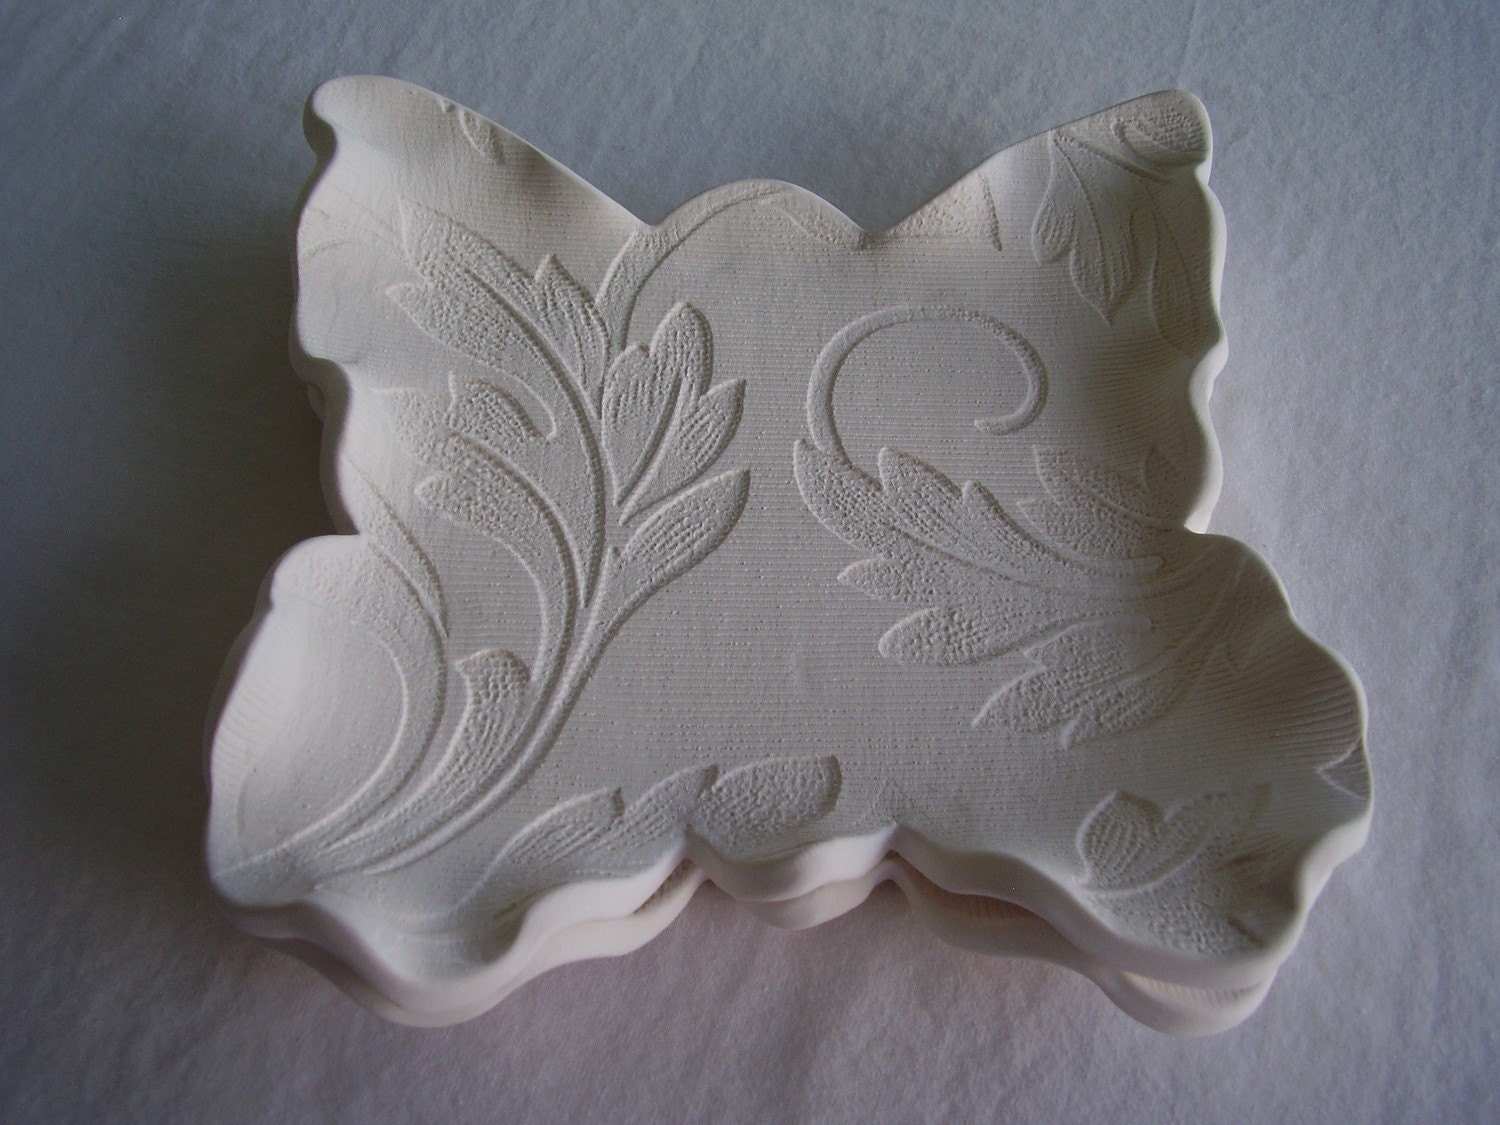 Made To Order - Butterfly Plates - Set of Two - Lunch/Appetizer